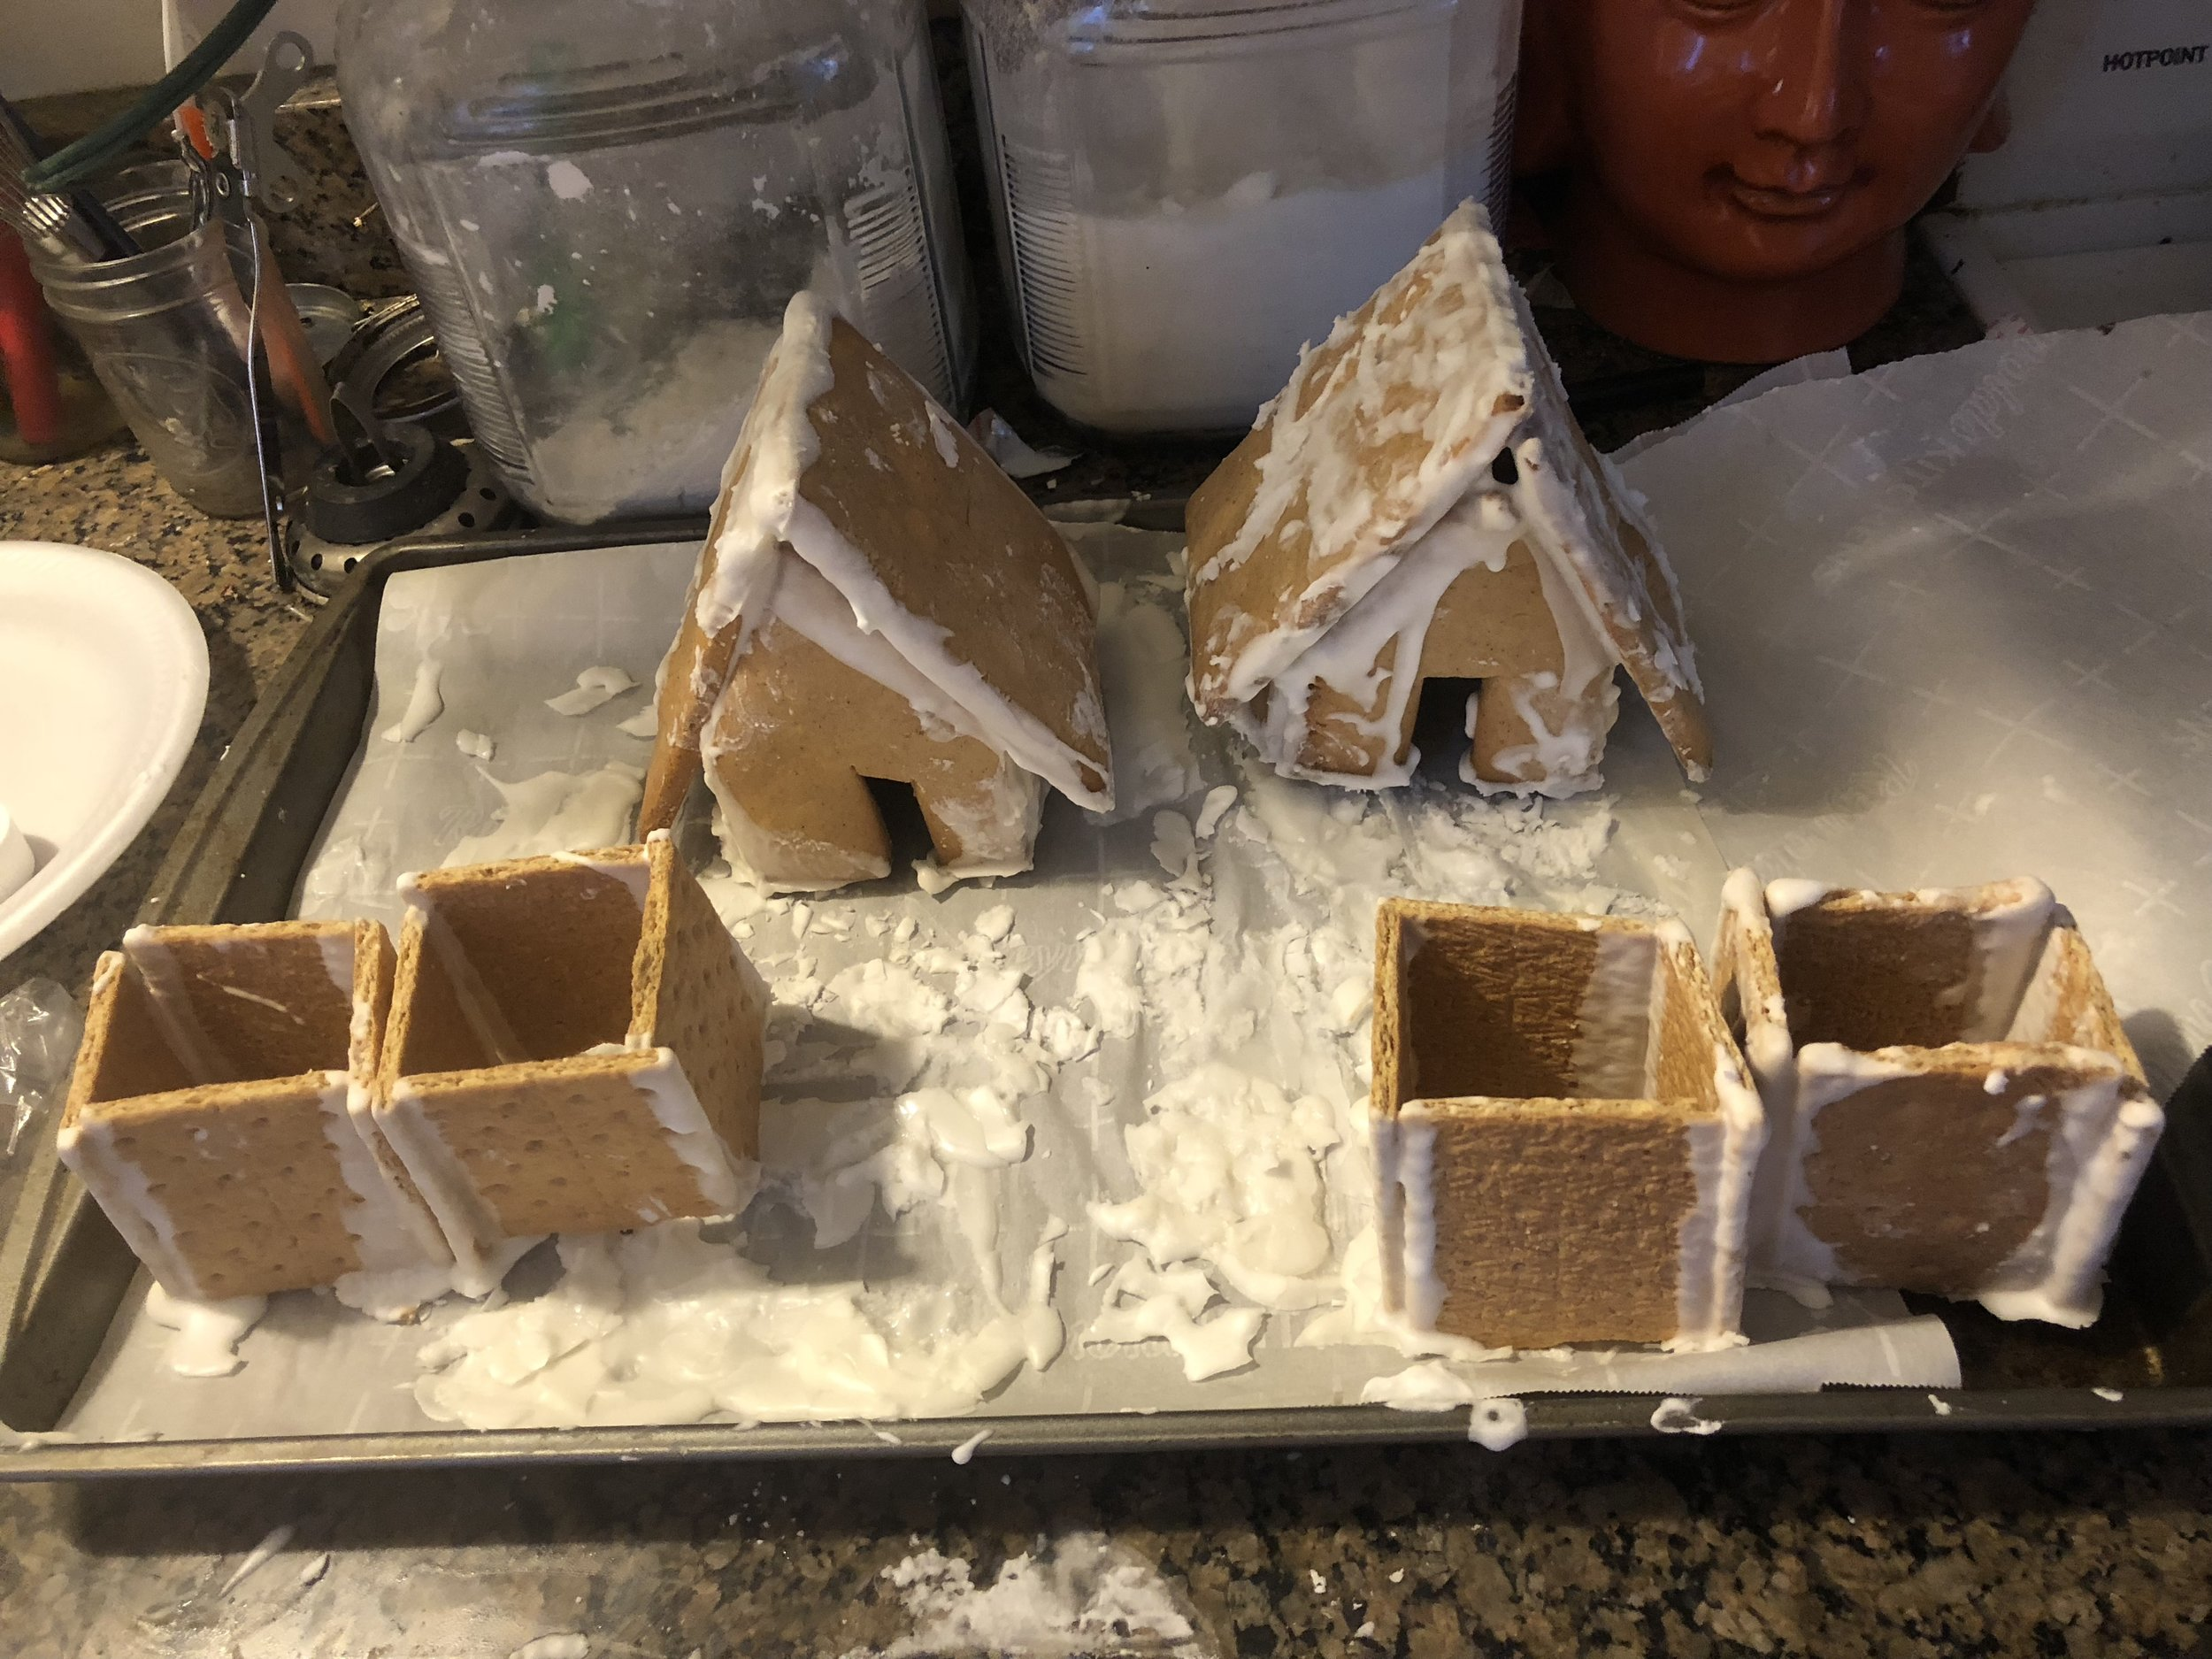 Royal Icing  5-8 egg whites  2 cups of powdered sugar  tsp of cream of tartar    Plan of Attack  Whip the egg whites and cream of tartar until sm peaks form  Gradually add in the powdered sugar; Store covered in your refrigerator.    * I used another gingerbread recipe than I have used in the past and I think you have to know what your house pattern looks like before deciding on a recipe. I should have use my rolling pi to make the gingerbread pieces thinner to make it easier to assemble!